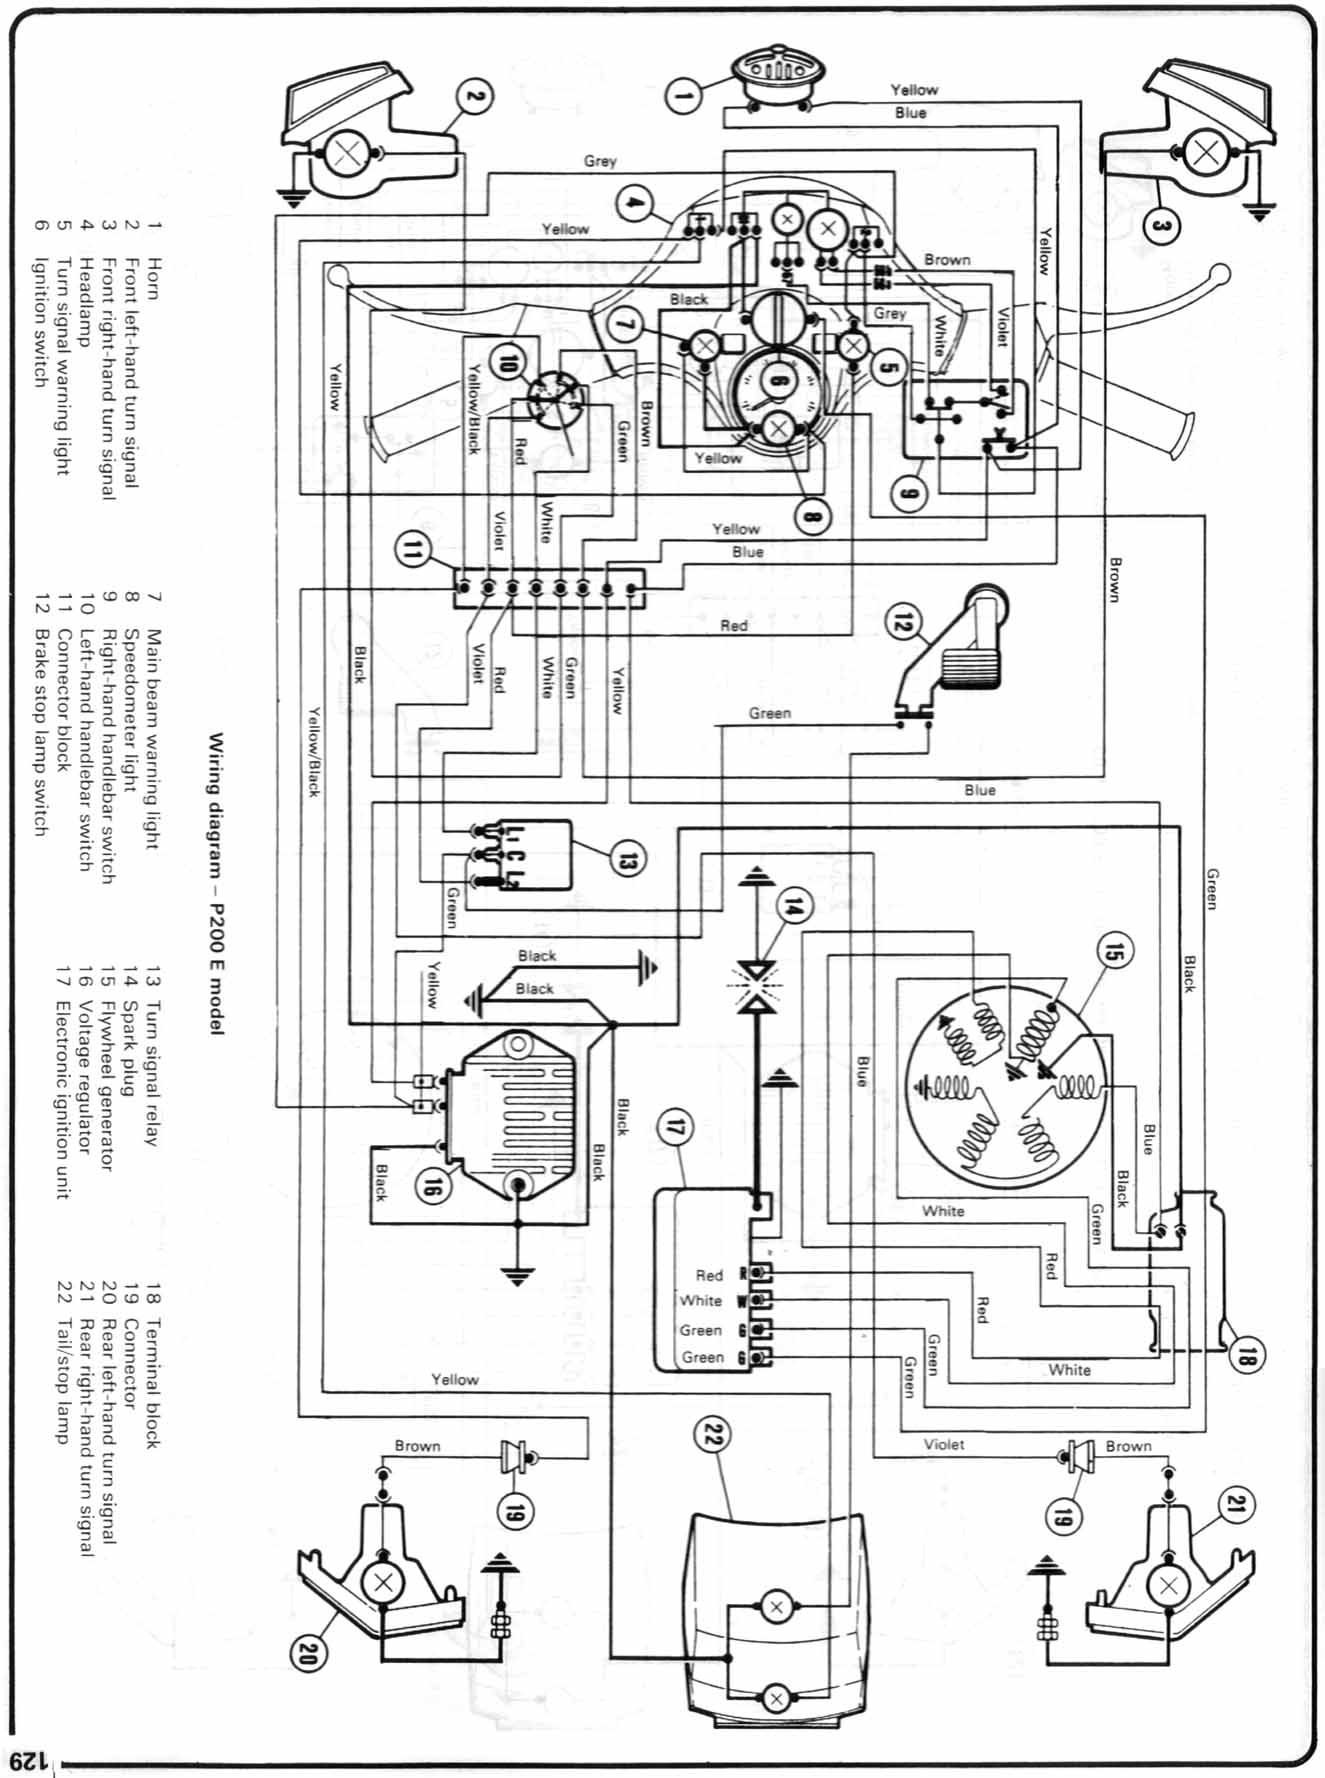 vespa p series maintenance repair rh vespamaintenance com Home Electrical Wiring Diagrams Basic Electrical Wiring Diagrams